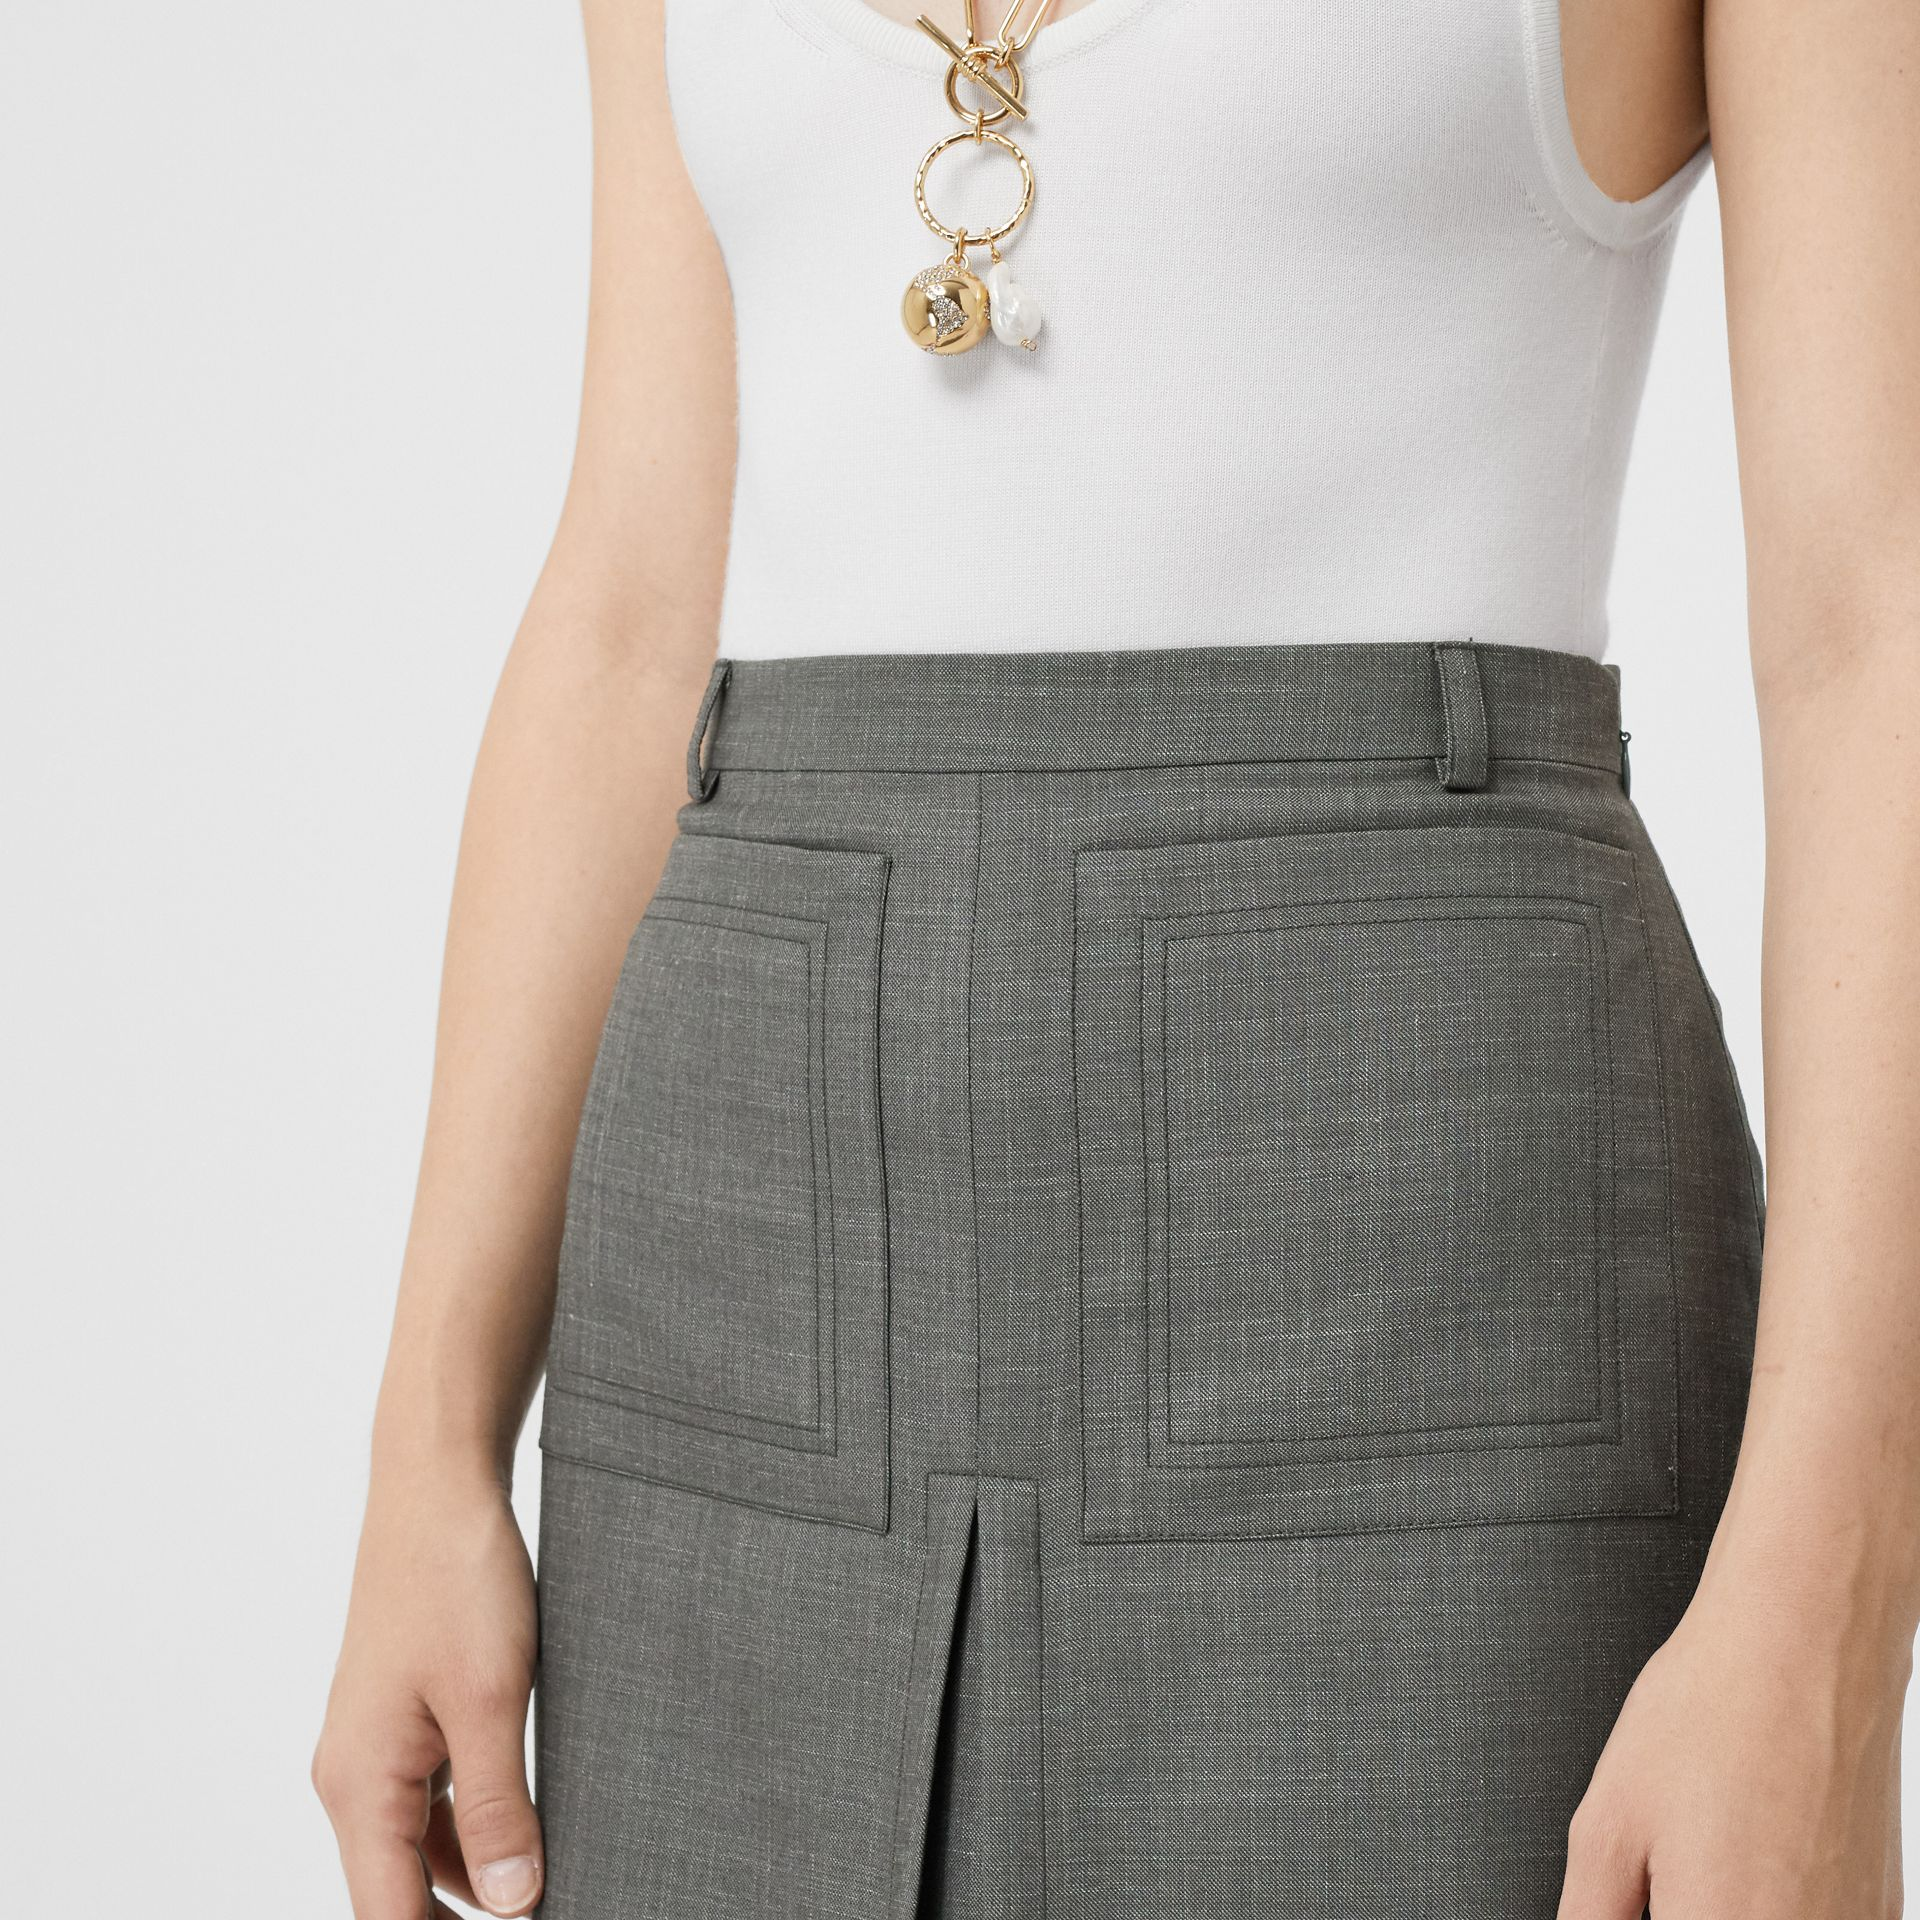 Box-pleat Detail Wool Silk Blend A-line Skirt in Charcoal Grey - Women | Burberry - gallery image 1